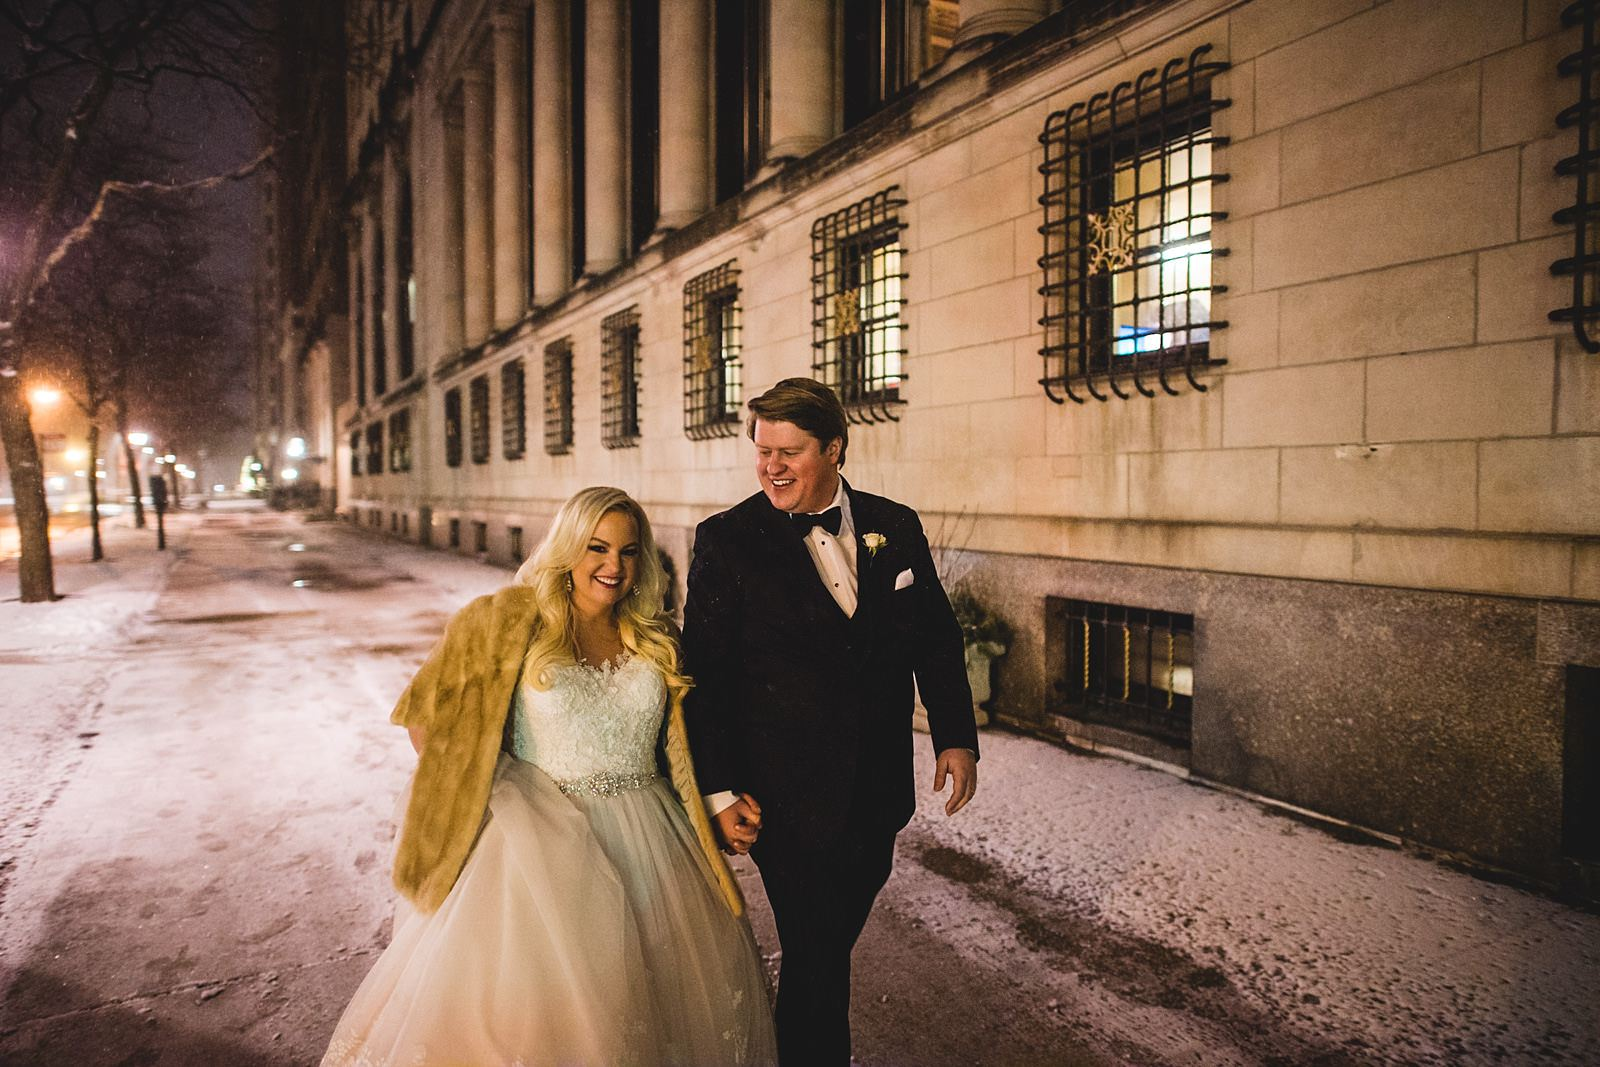 42 cold winter wedding photos in chicago - Drake Chicago Luxury Wedding Photography // Kate + Royce